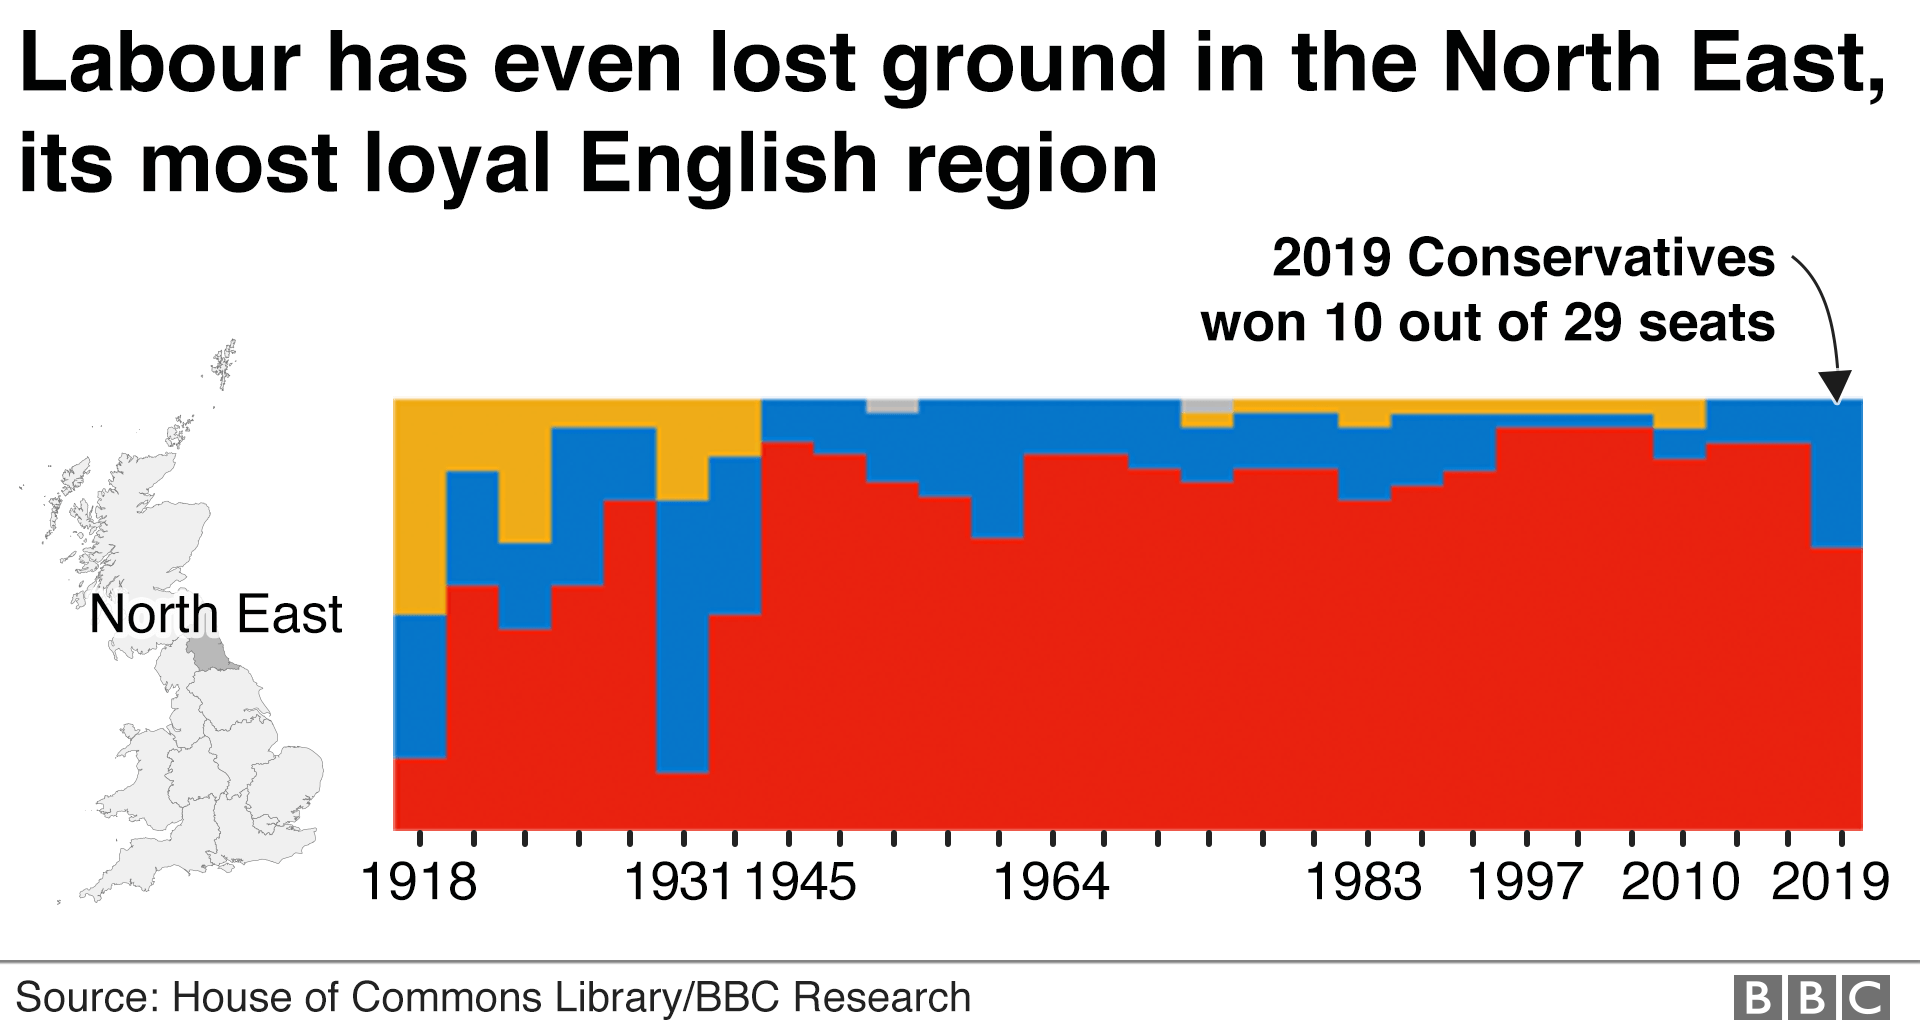 Chart showing general elections in the North East since 1918